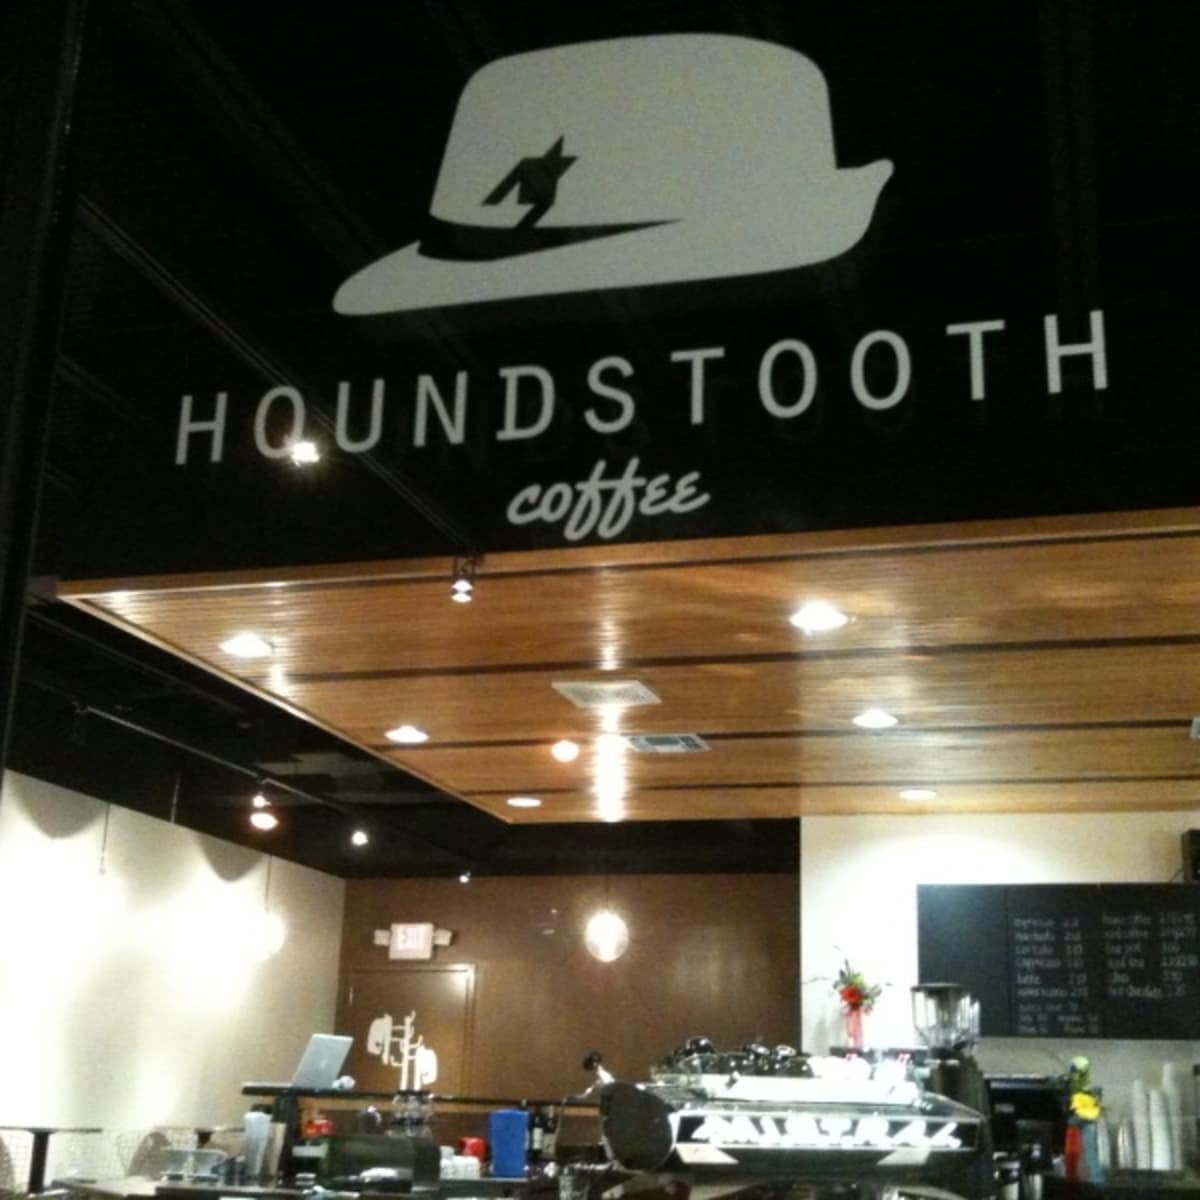 Austin_photo: places_drinks_houndstooth_exterior